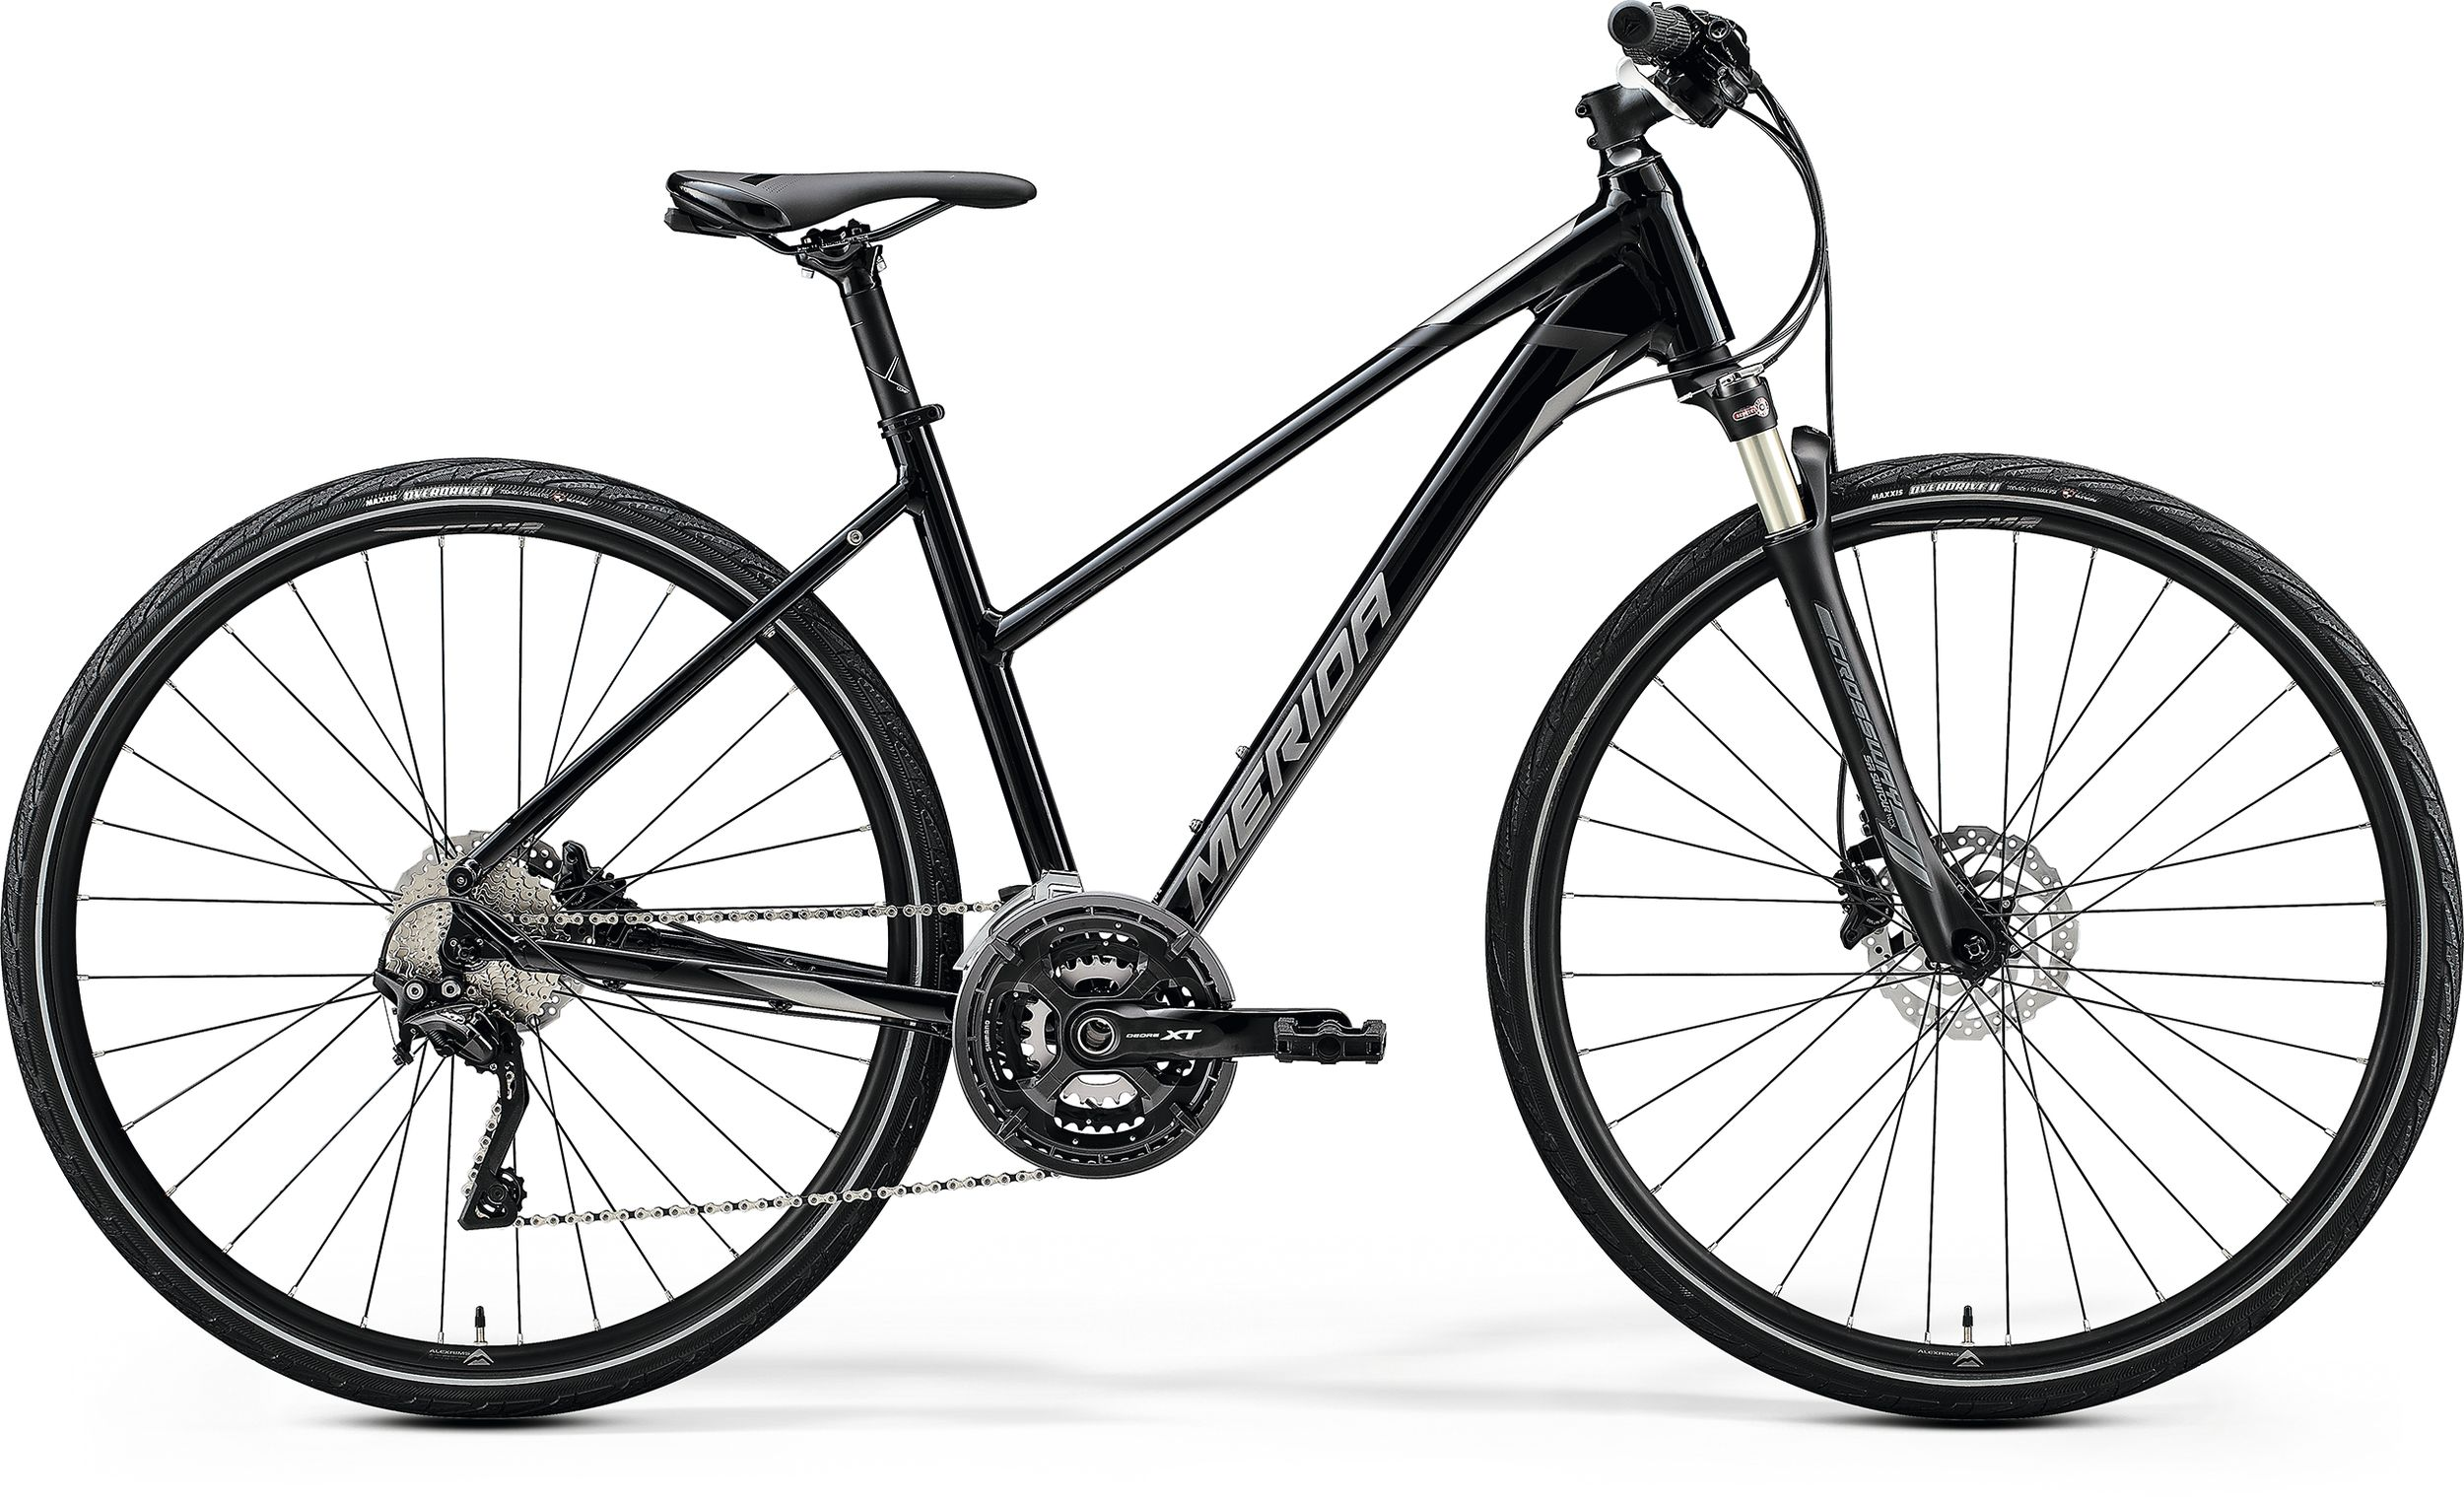 MERIDA CROSSWAY XT-EDITION-LADY Glossy Black(Matt Silver/Black) 2020